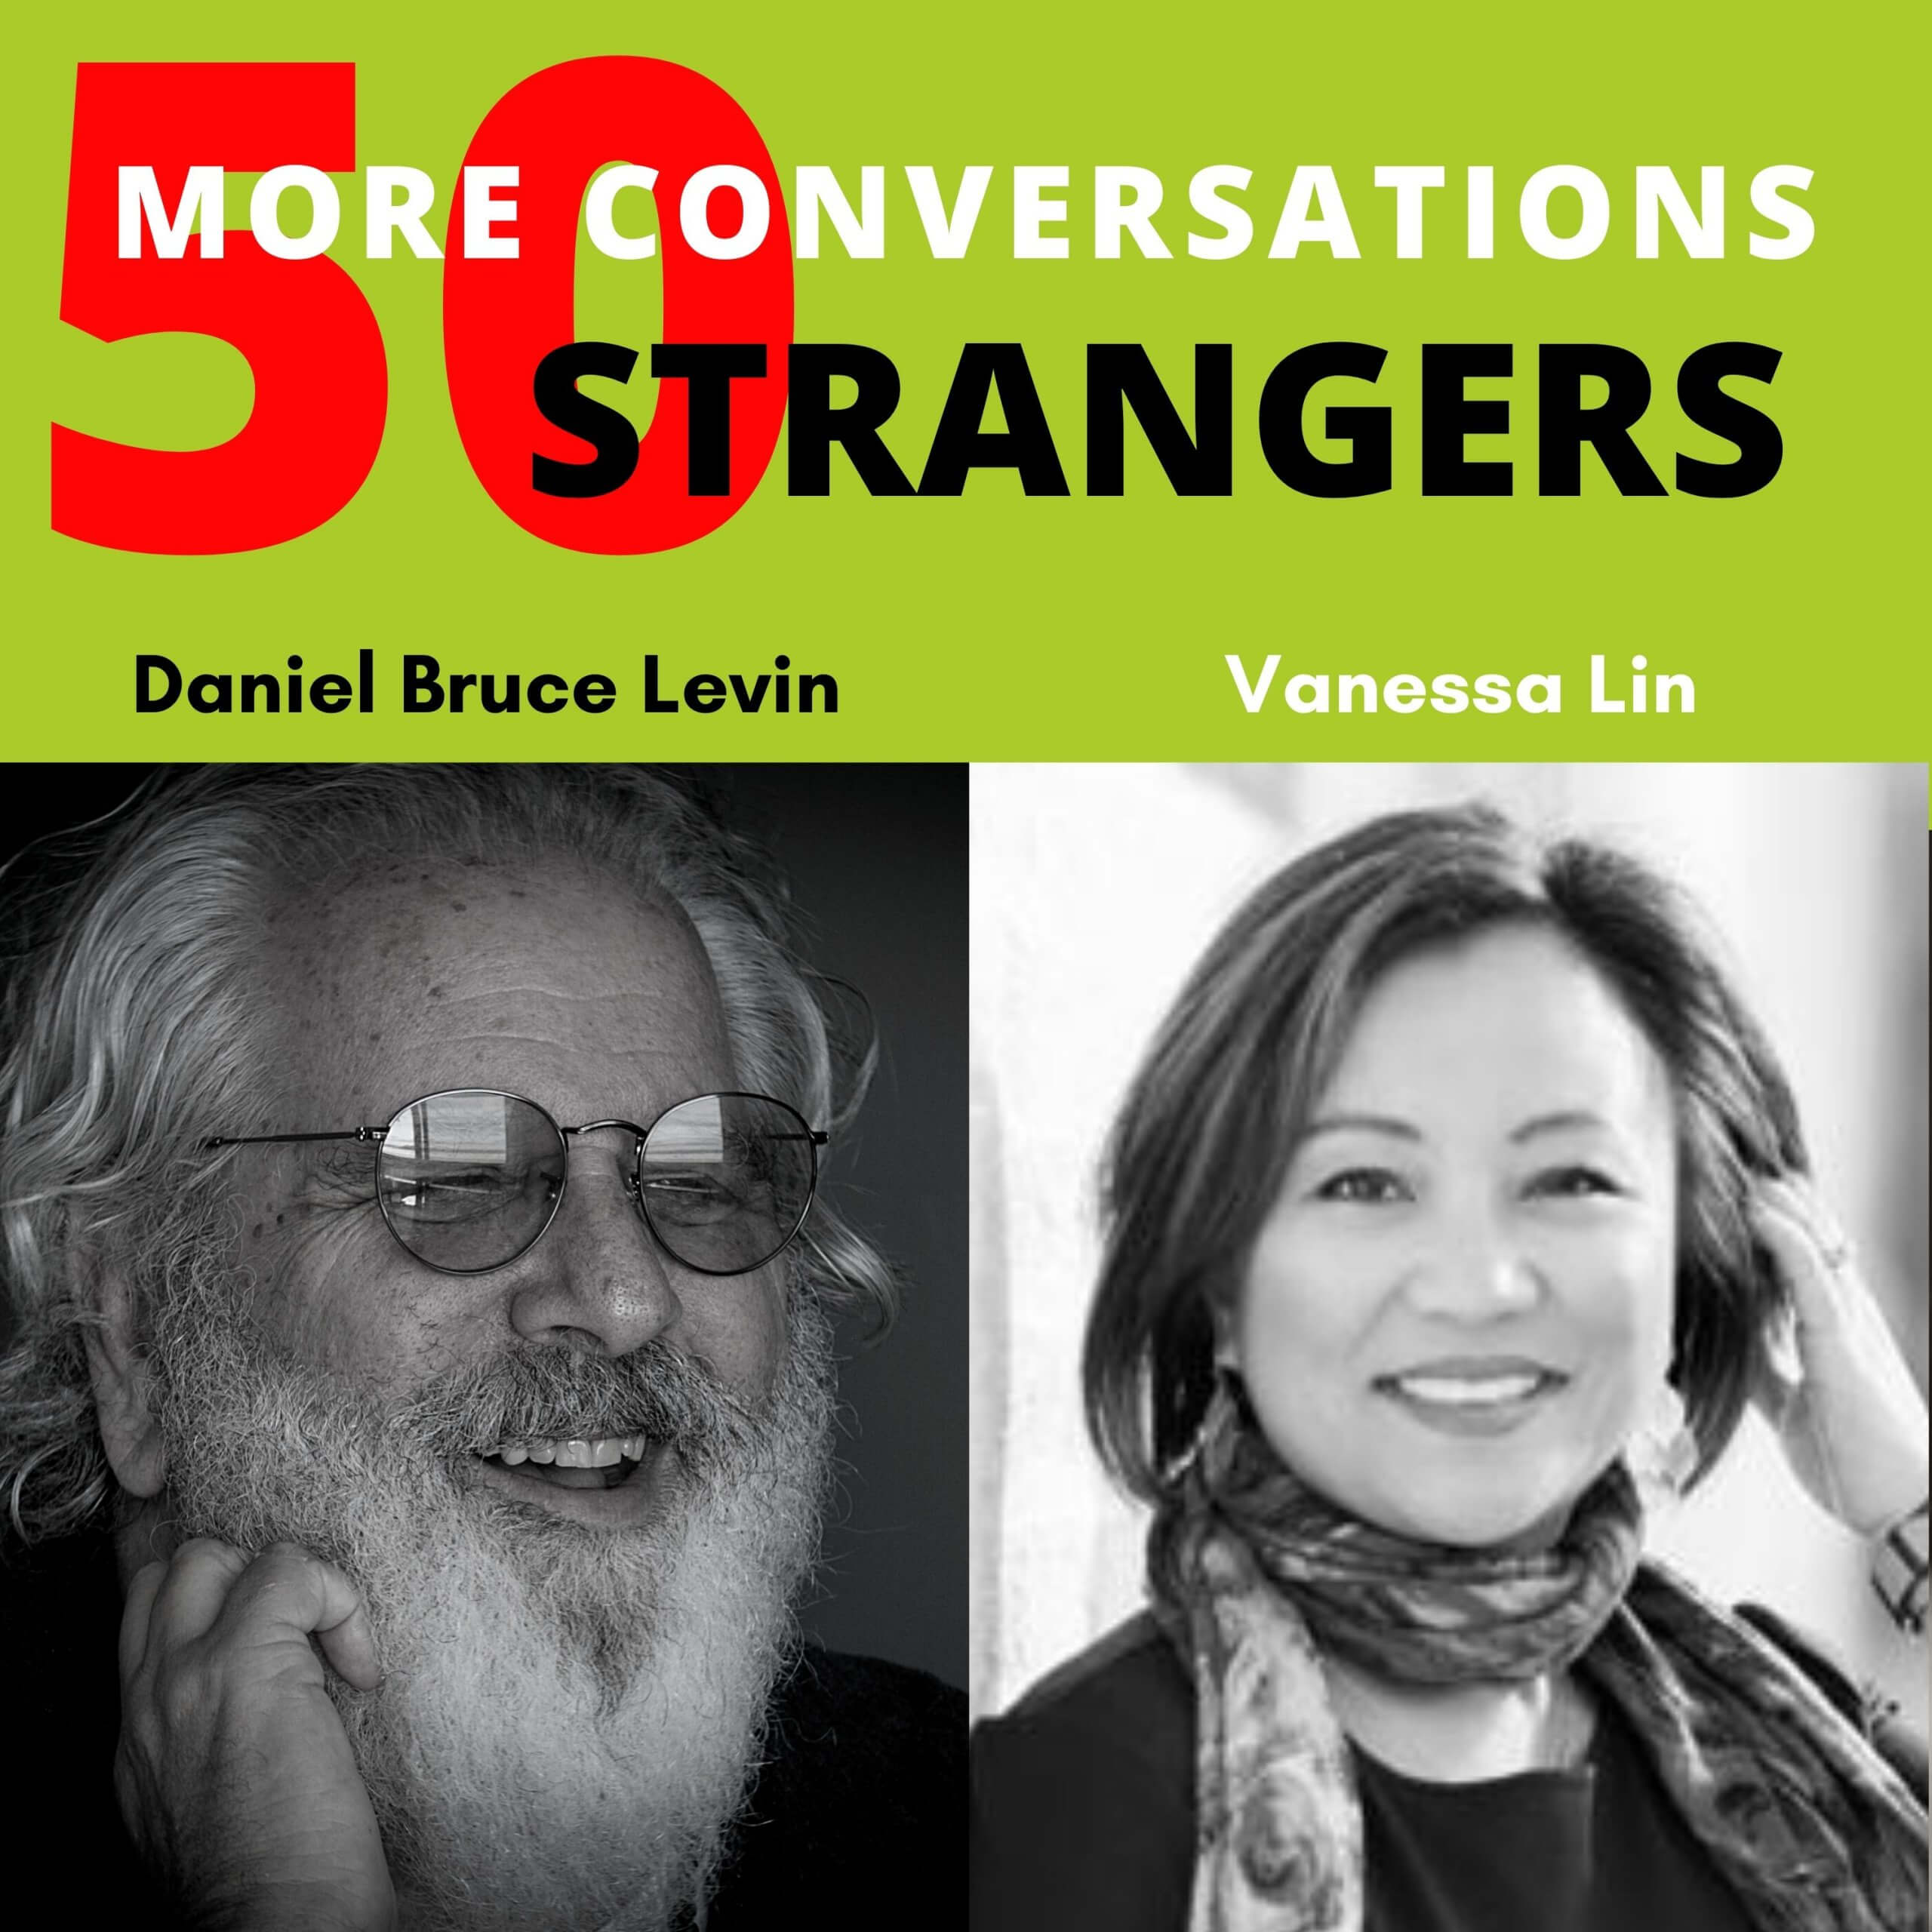 50 More Conversations with 50 More Strangers with Vanessa Lin